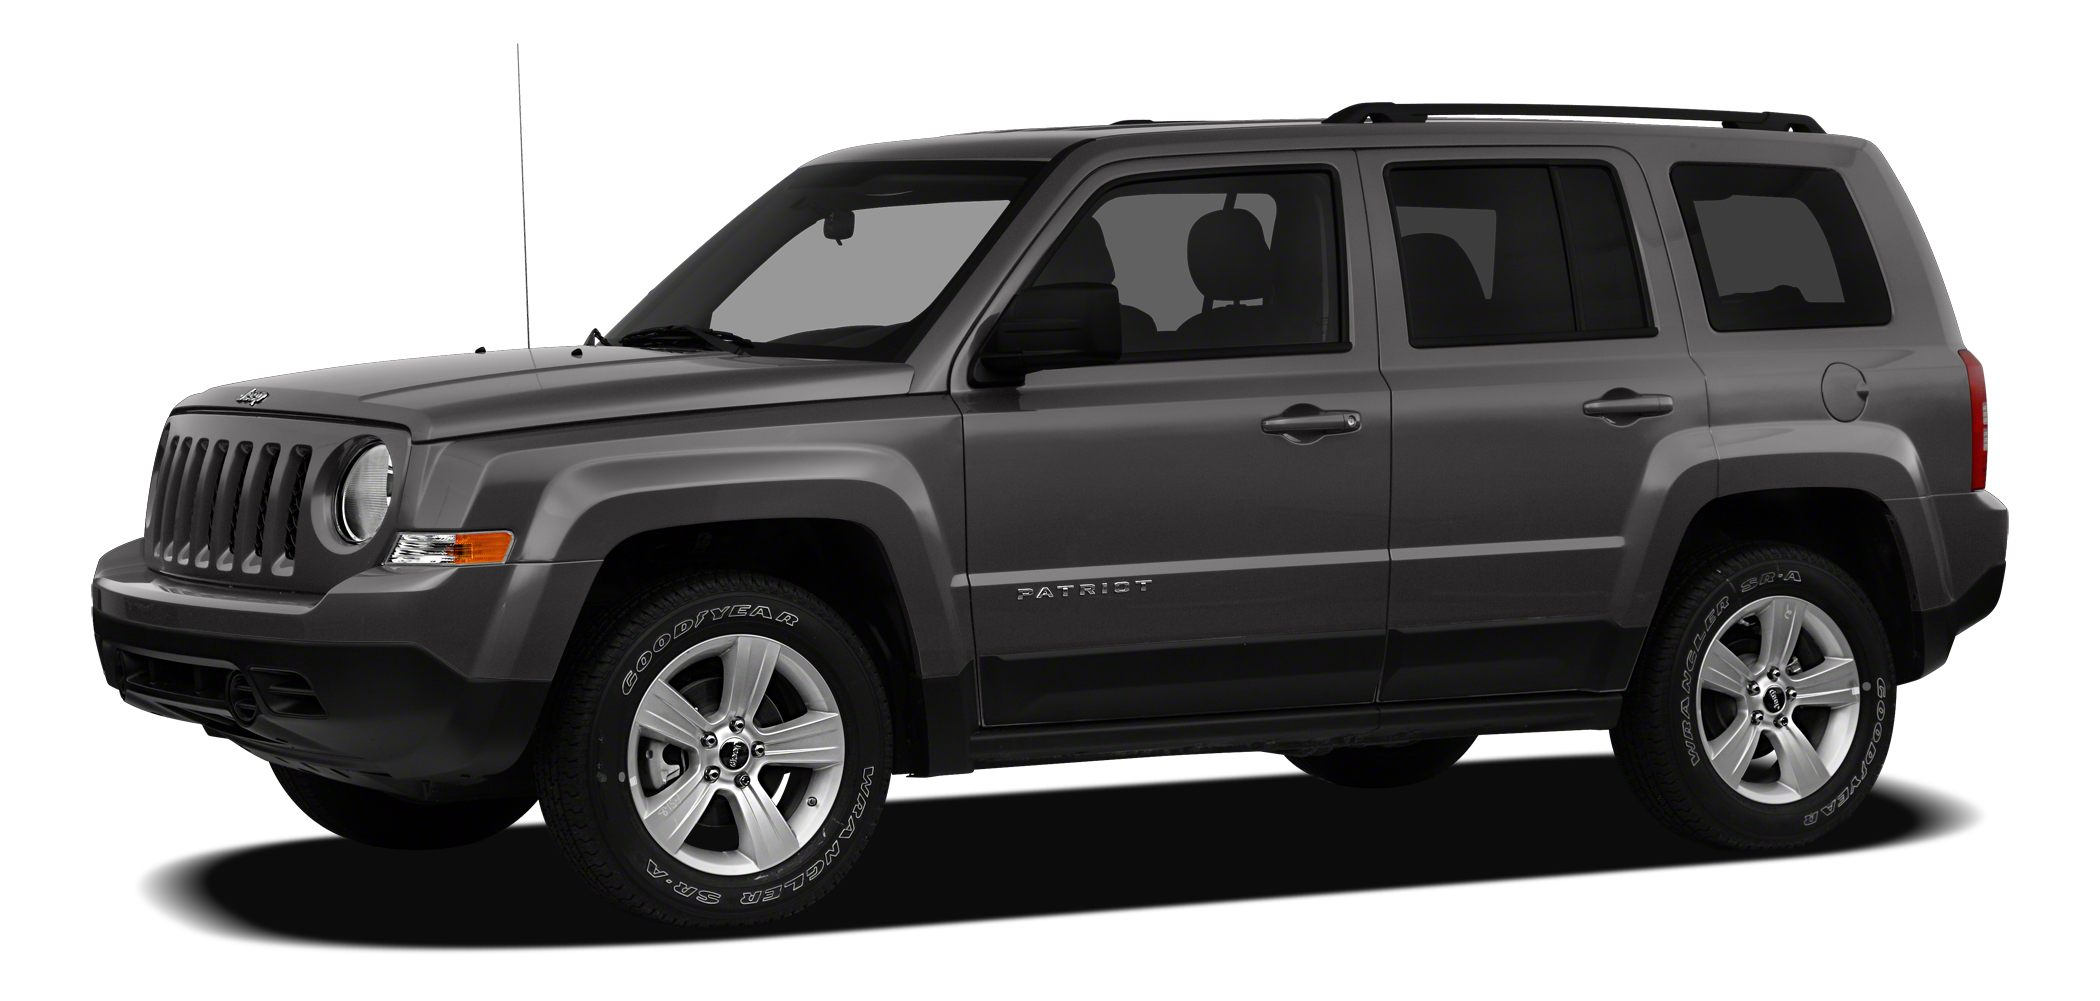 2012 Jeep Patriot Latitude Miles 78689Color Mineral Gray Clearcoat Metallic Stock 16T522B VIN